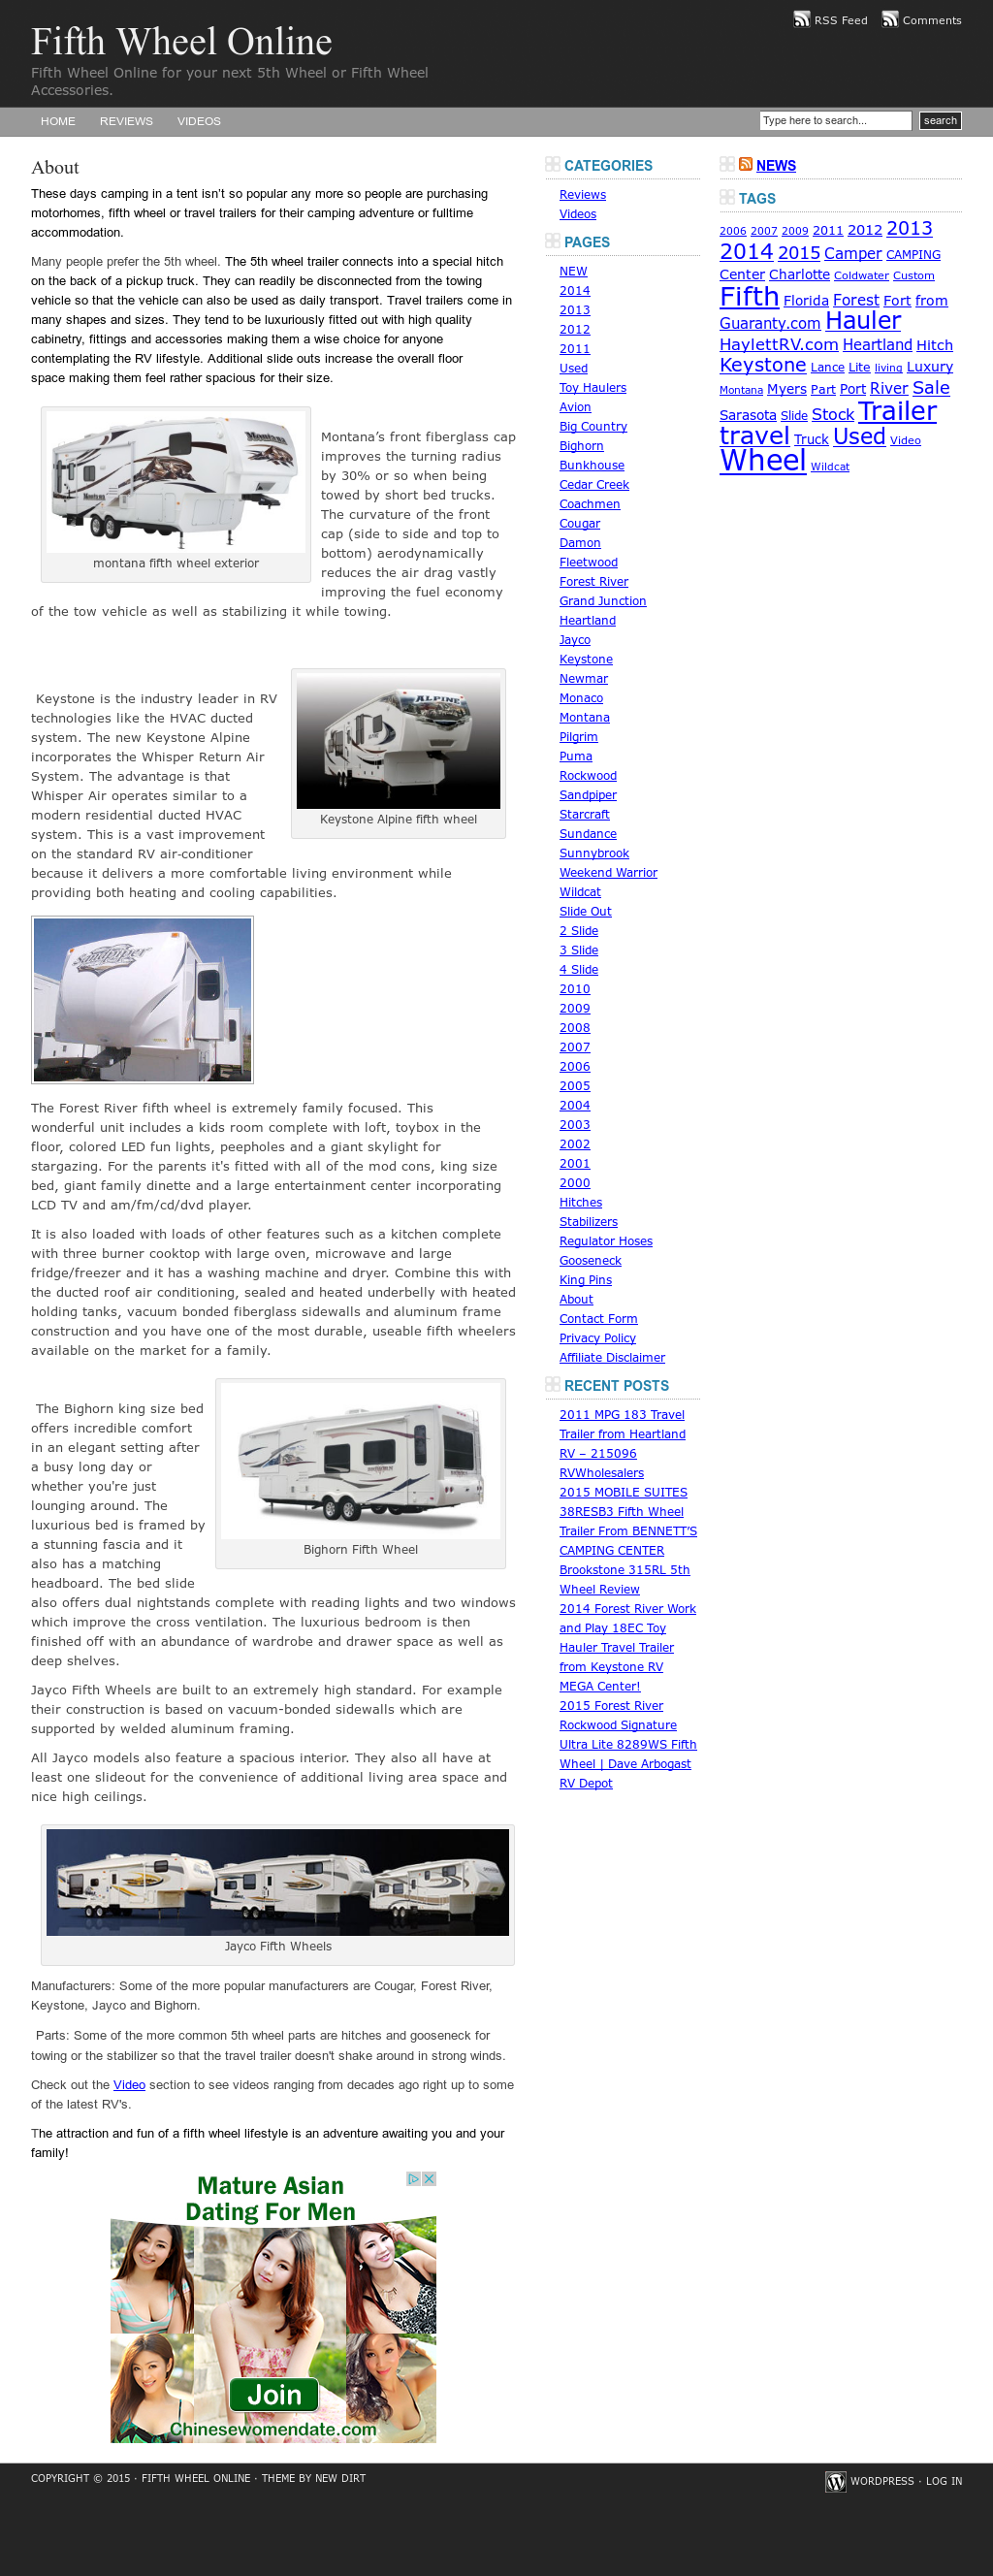 Fifth Wheel Online Competitors, Revenue and Employees